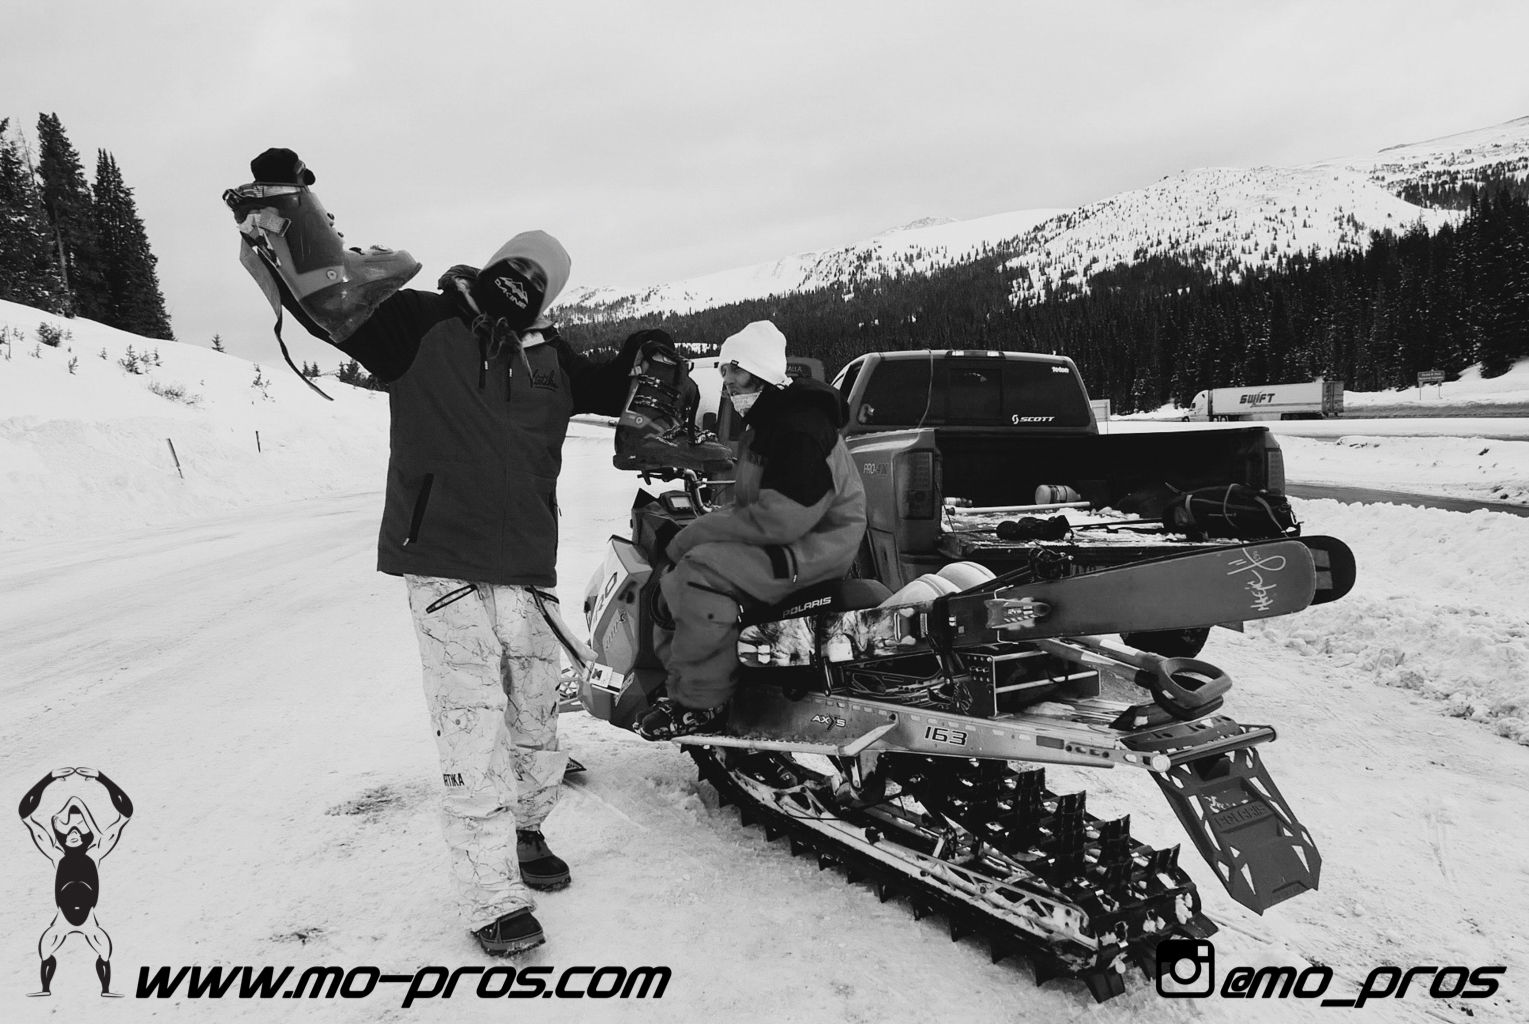 113_Backcountry _Backcountry United_CFR rack_Cheetah Factory Racing_gas Rack_Gear_Gun Rack_LinQ Snowboard Ski_Snowboard rack_snowboard_Snowboarding_snowmobile bag_Snowmobile_timbersled bag_Timbersled.jpg